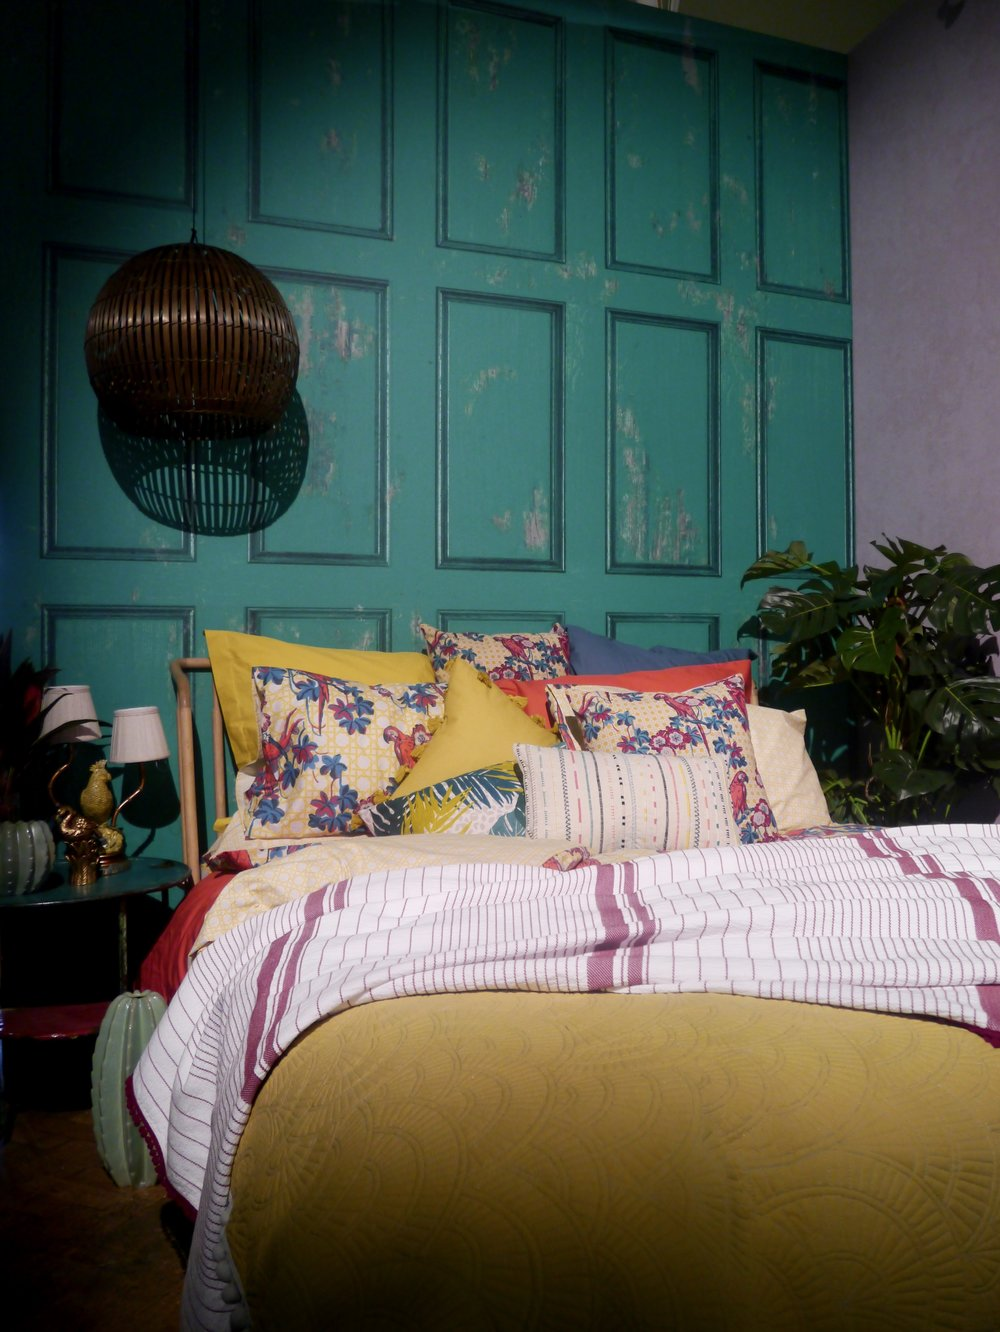 Stunning yellow bedding at House of Fraser incorporates striped throws and floral pillows - Spring Design Trends - Phoebe Oldrey Interior Design .jpg